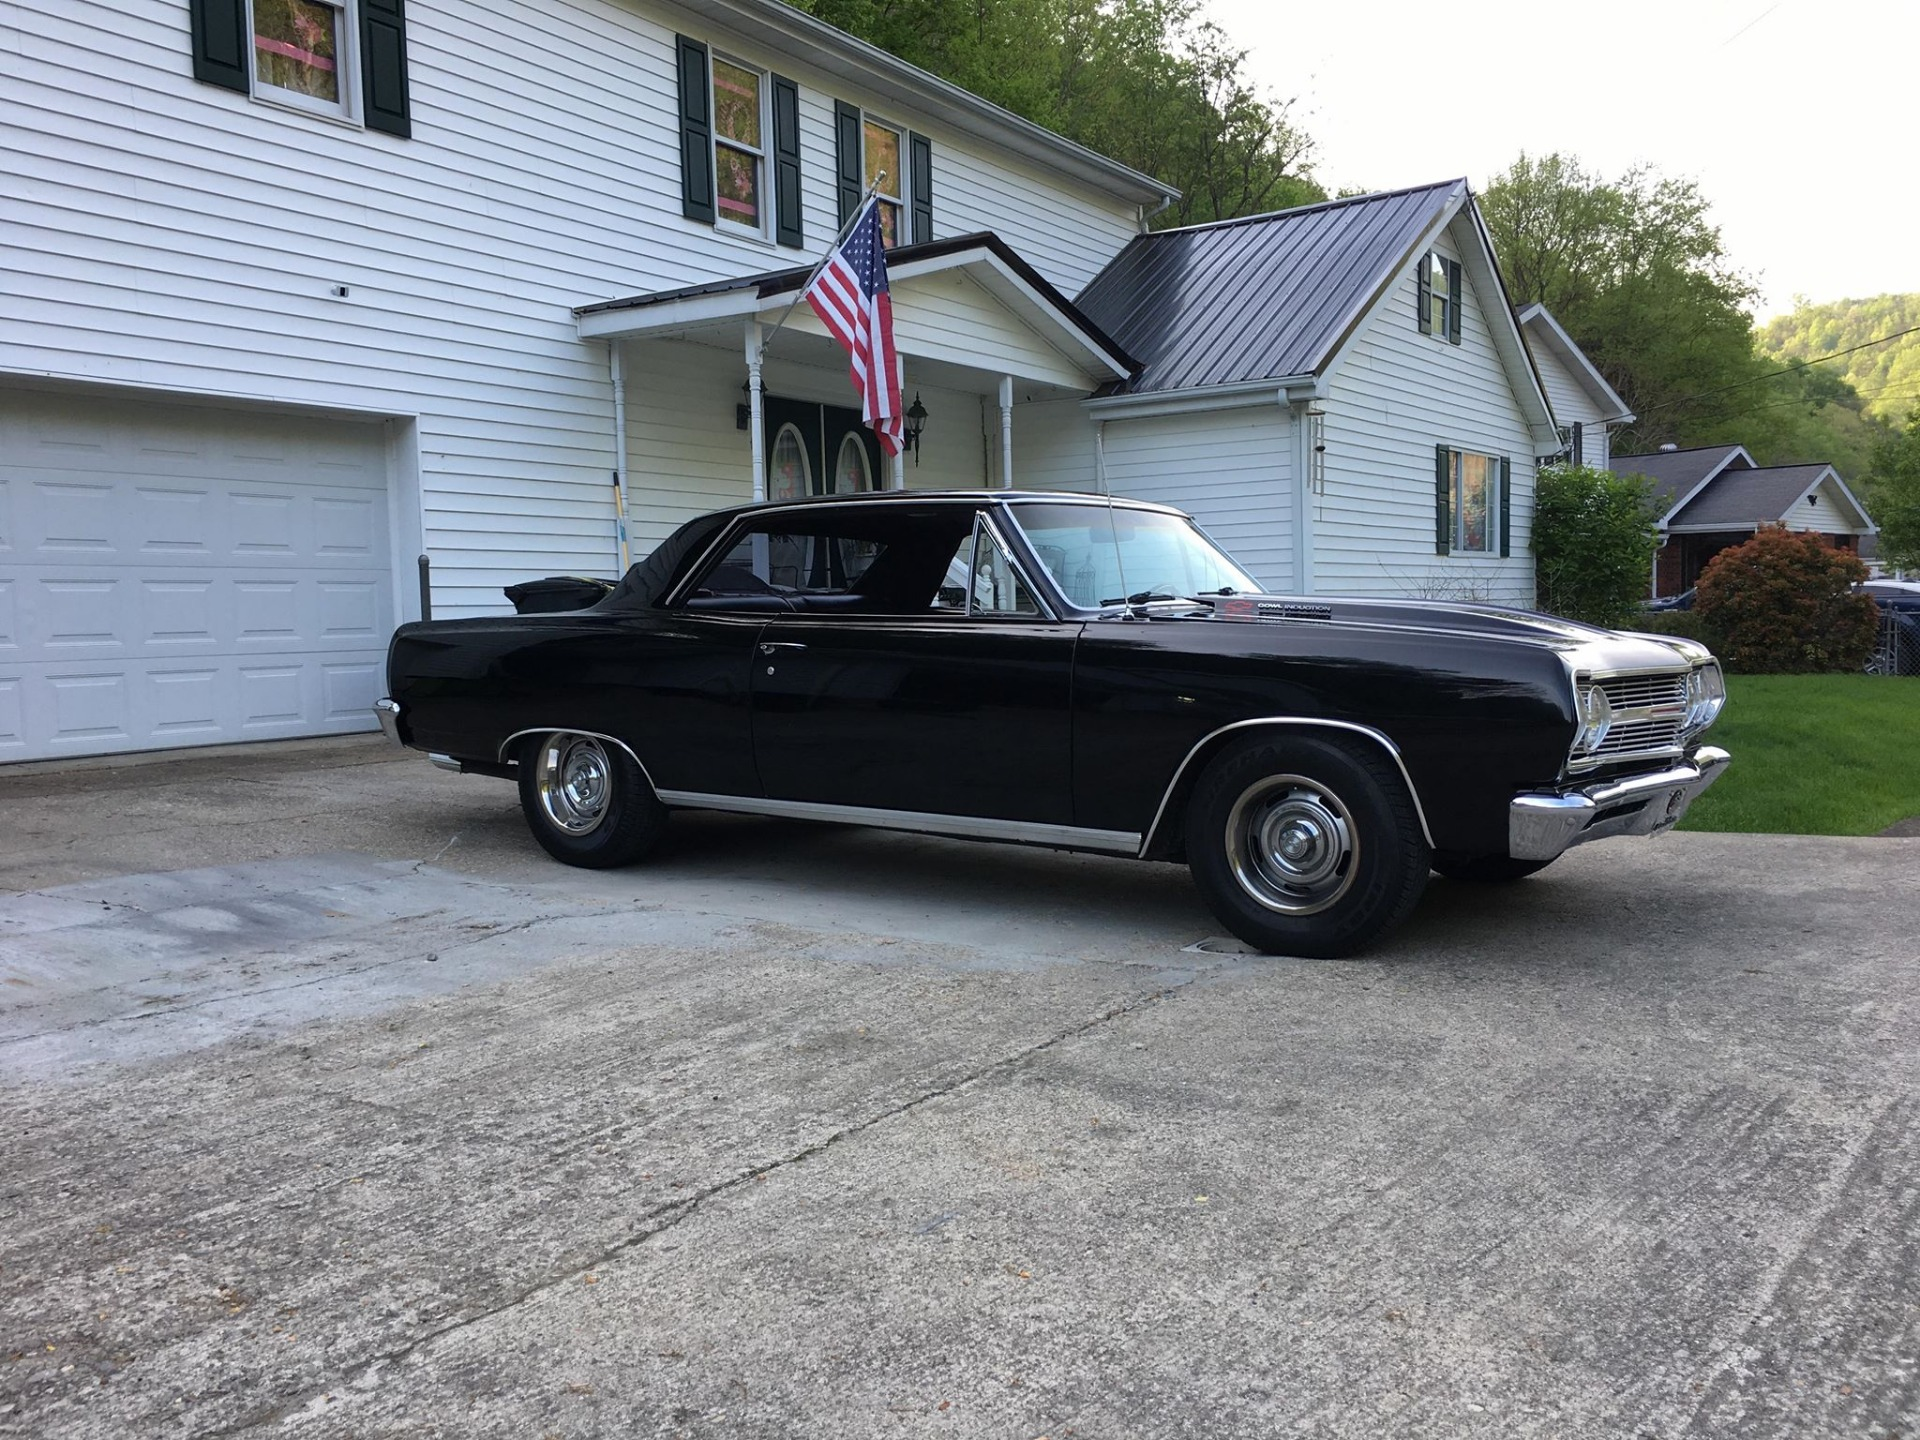 Used 1965 Chevrolet Chevelle -FUEL INJECTED WITH 700R4 OVERDRIVE TRANSMISSION- | Mundelein, IL